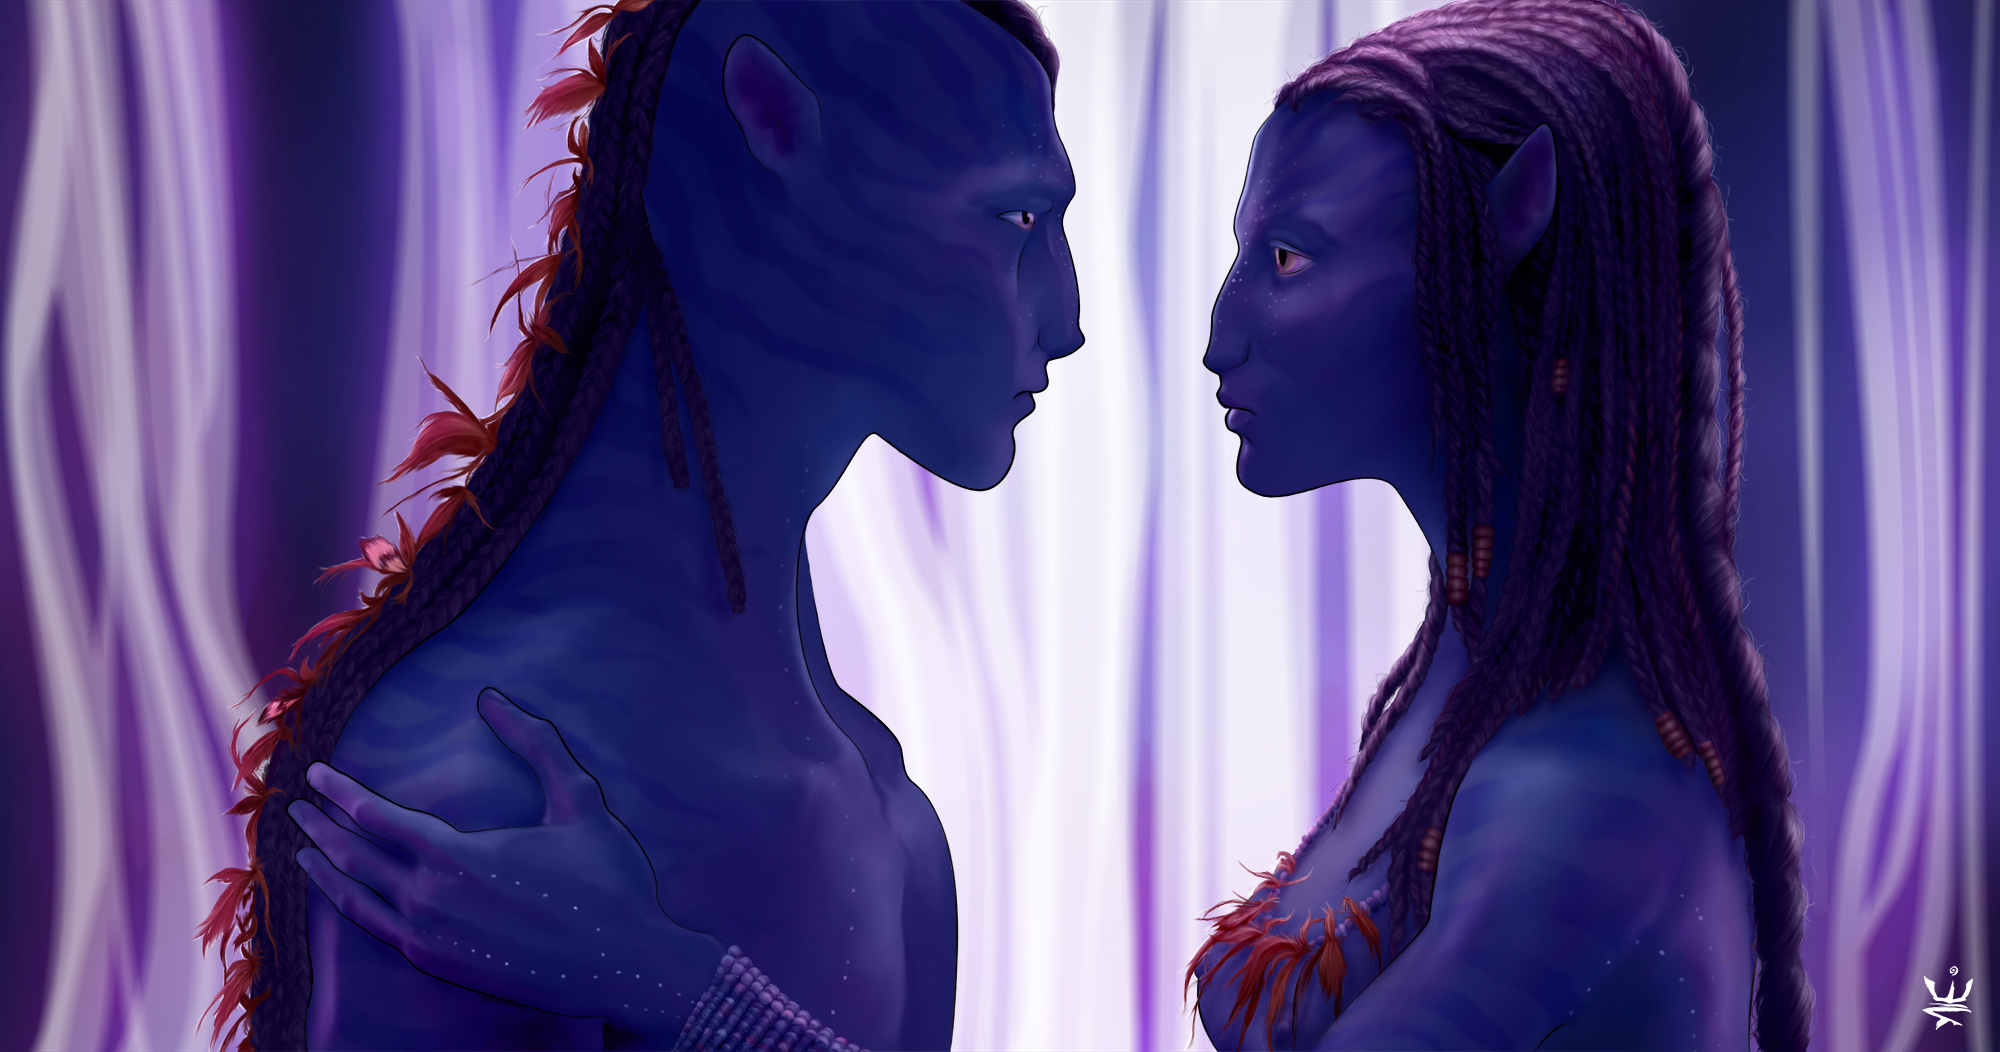 SoulMates (Avatar fanart) by Esther Wagner